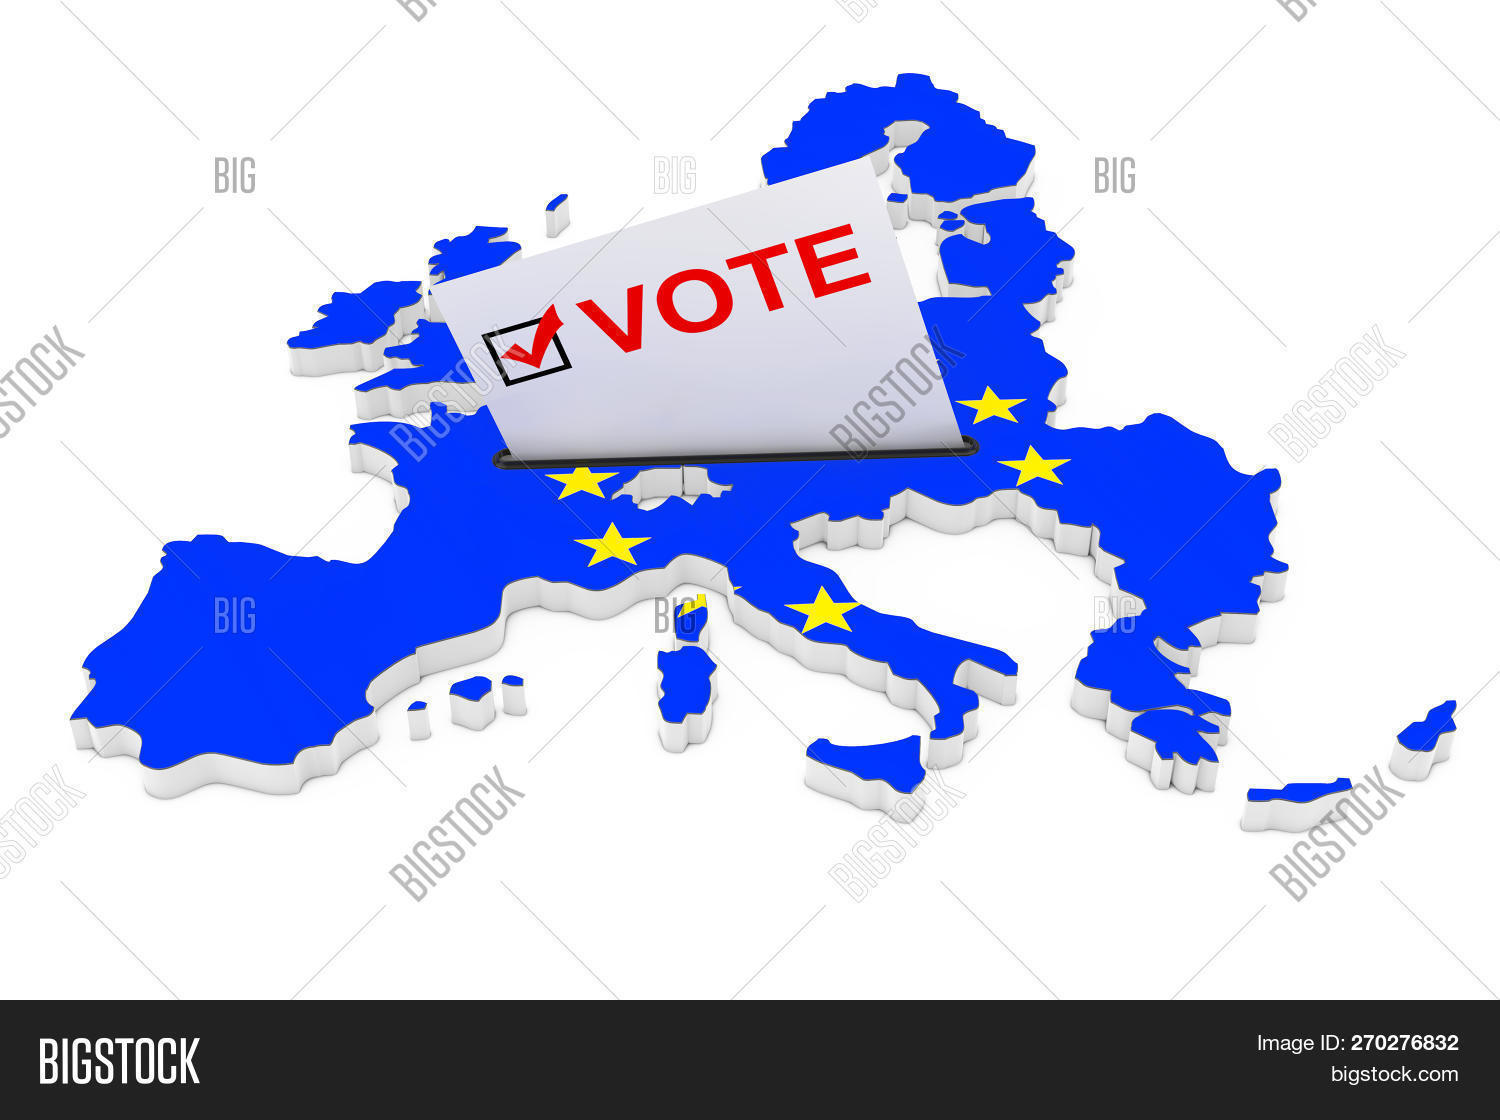 Voting Europe Concept Image & Photo (Free Trial) | Bigstock on free large united states map, free blank continent maps, large detailed map europe, free maps to print, free large printable world map, free large map of florida, large wall maps of europe, free vintage map printables, map of central europe, free large print world map, free printable blank world map, large map of eastern europe,